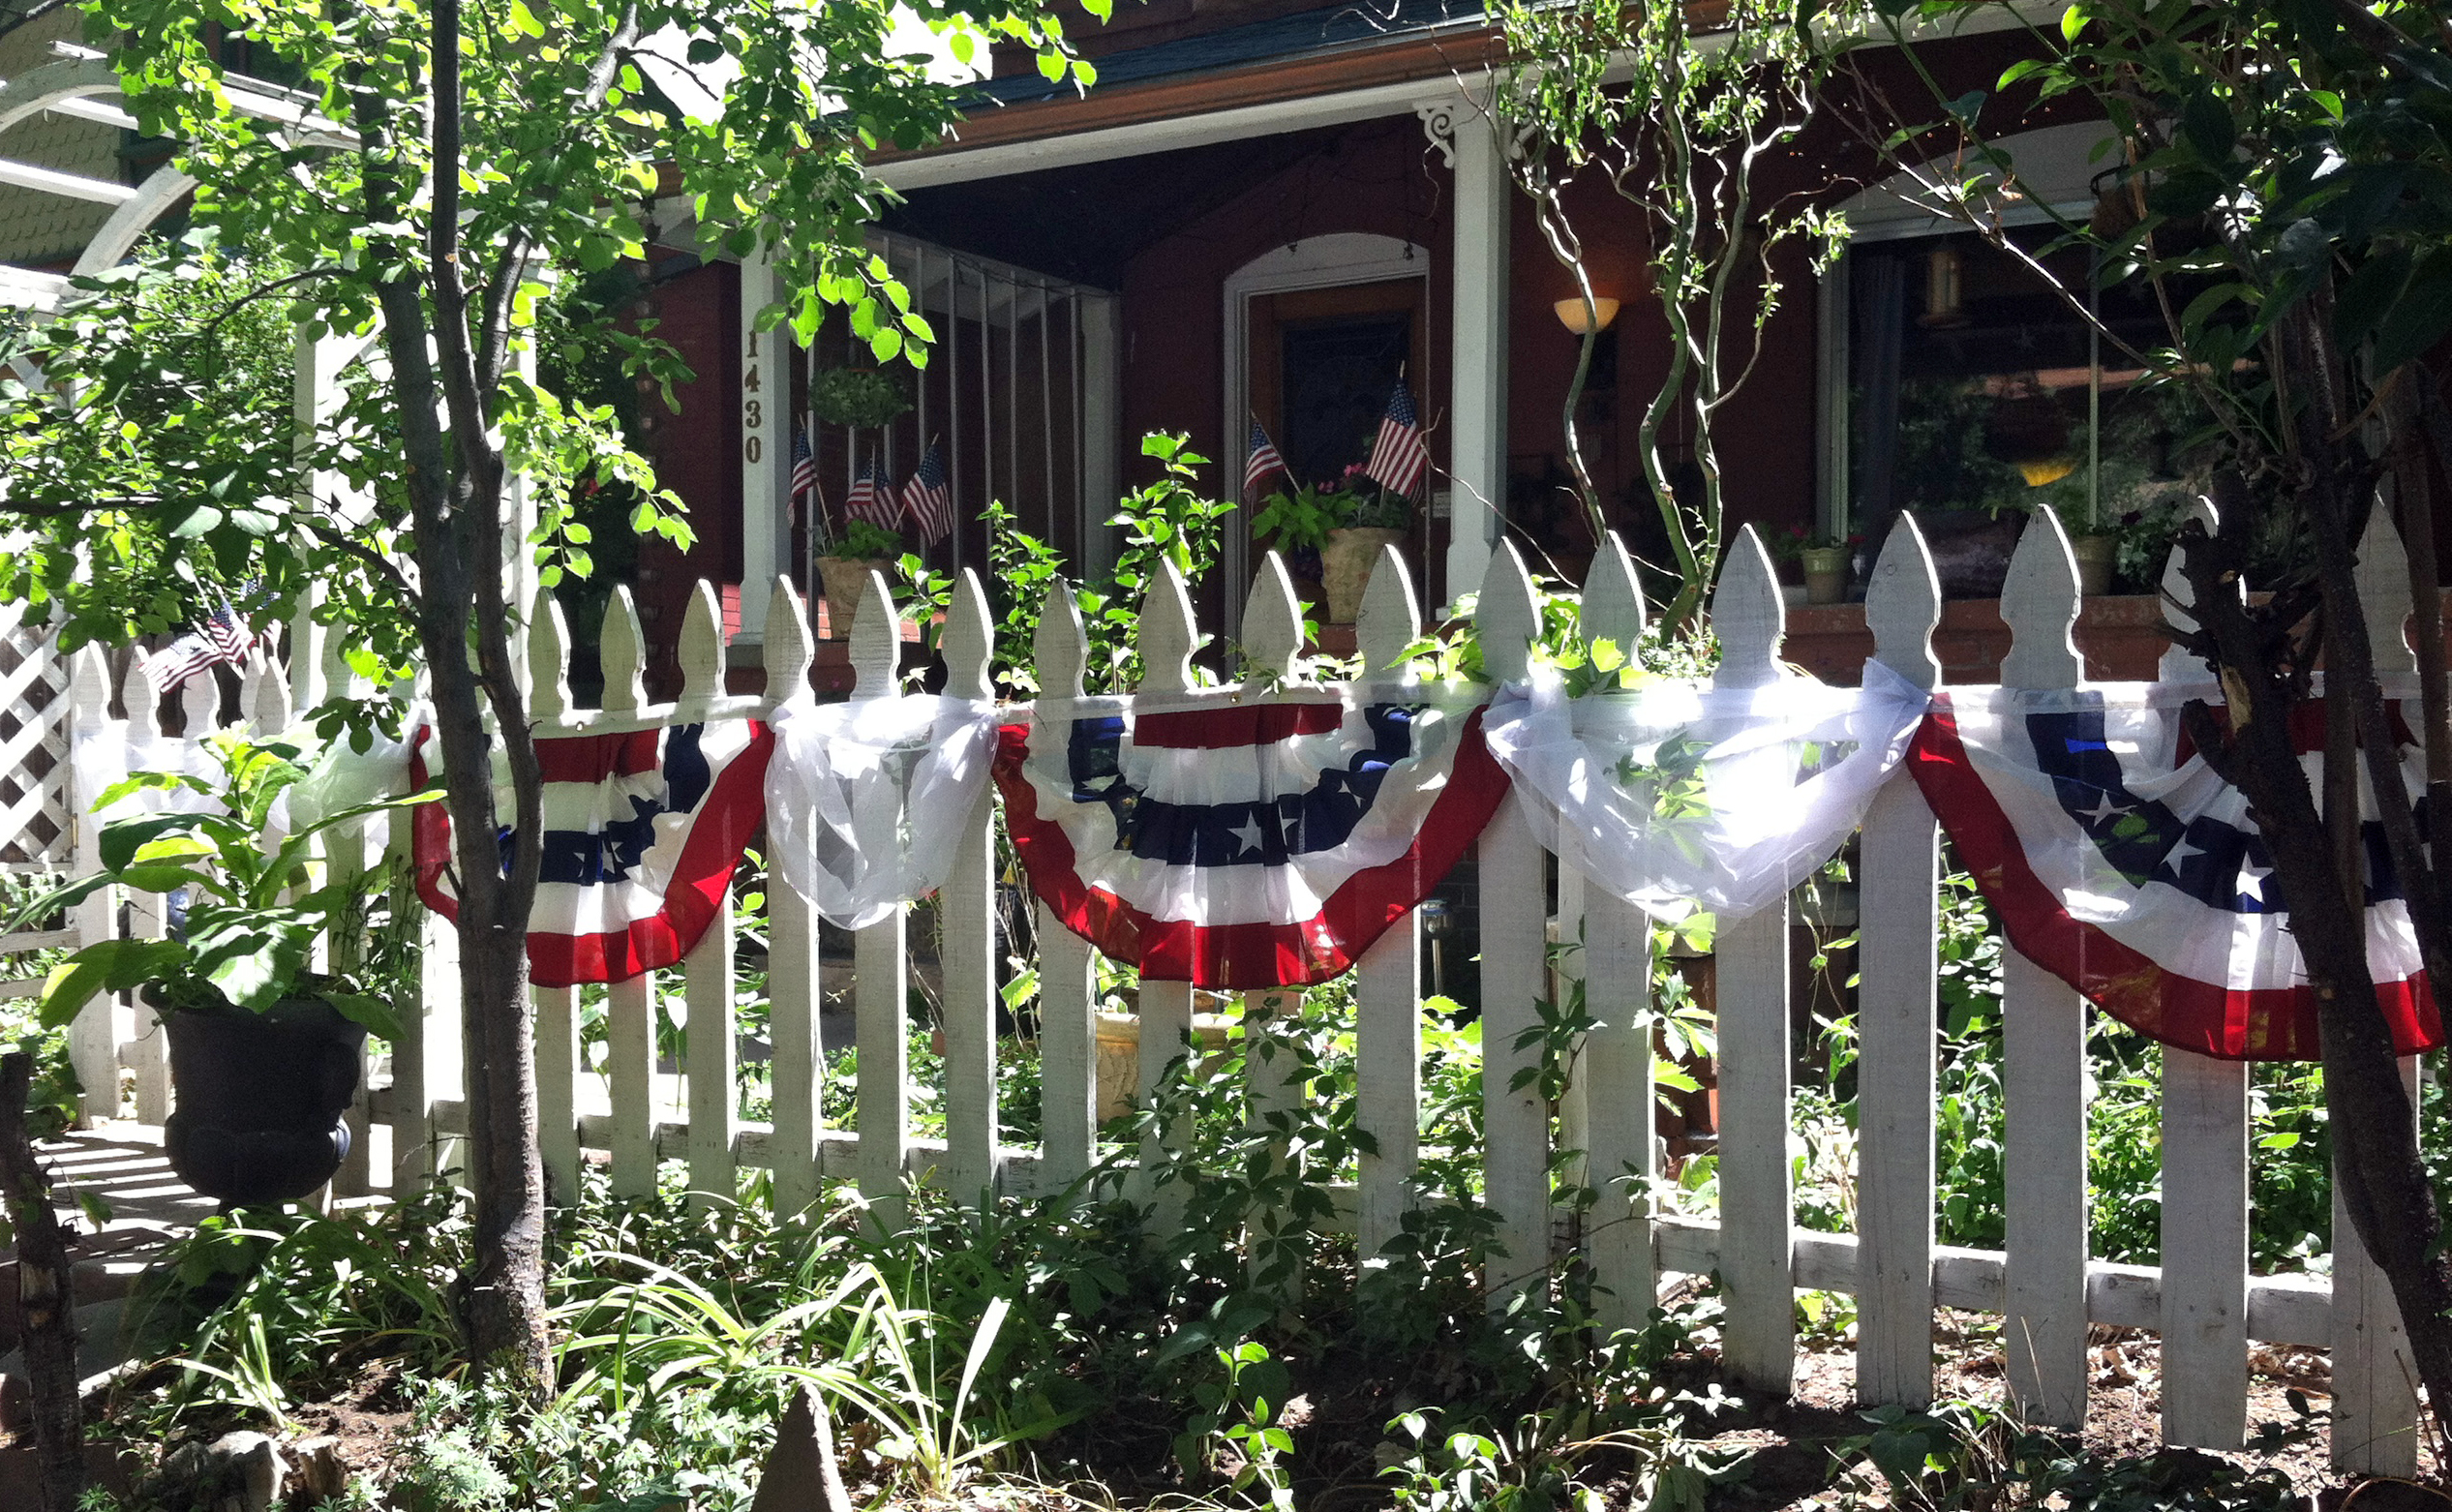 4th of july fast easy outdoor decor on the cheap the for Inexpensive garden decor